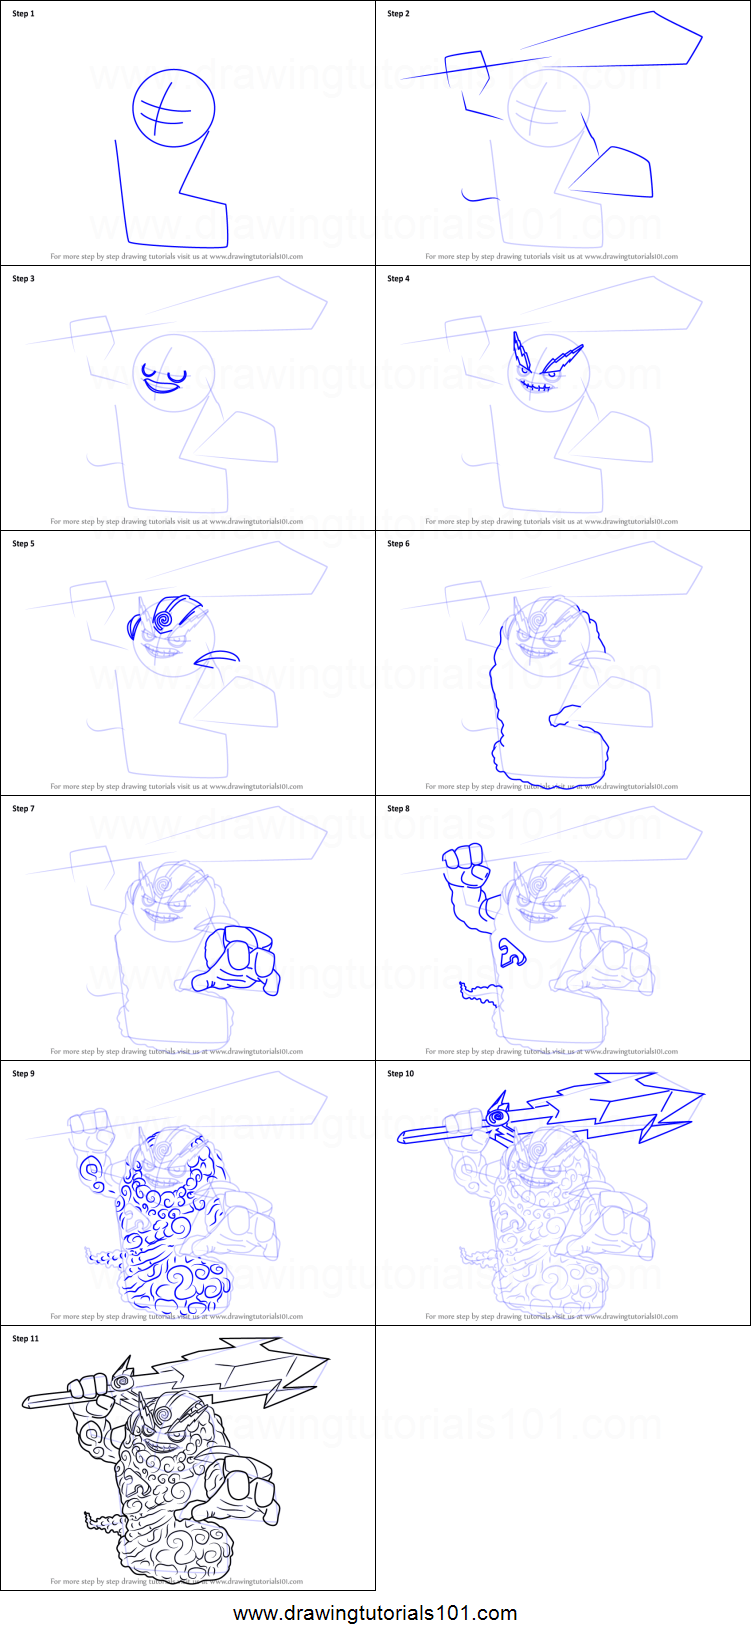 How To Draw A Thunderbolt : thunderbolt, Thunderbolt, Skylanders, Printable, Drawing, Sheet, DrawingTutorials101.com